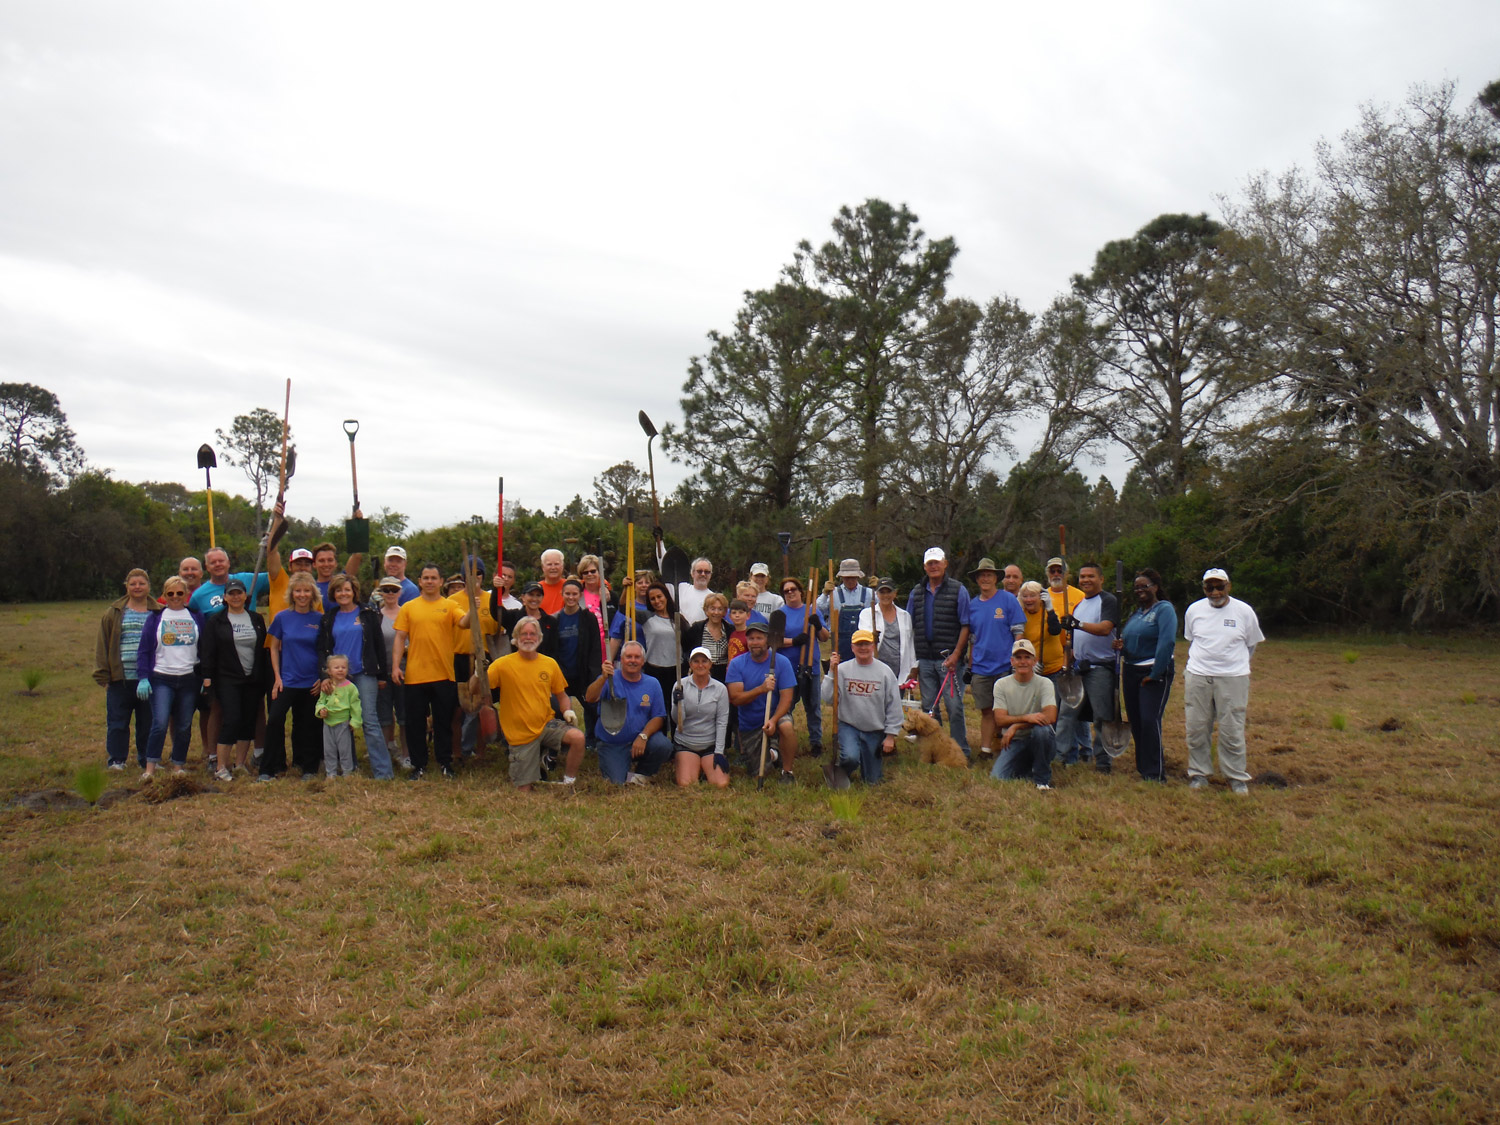 Rotarians at work: A group shot of volunteers from all three clubs. (Rotary)